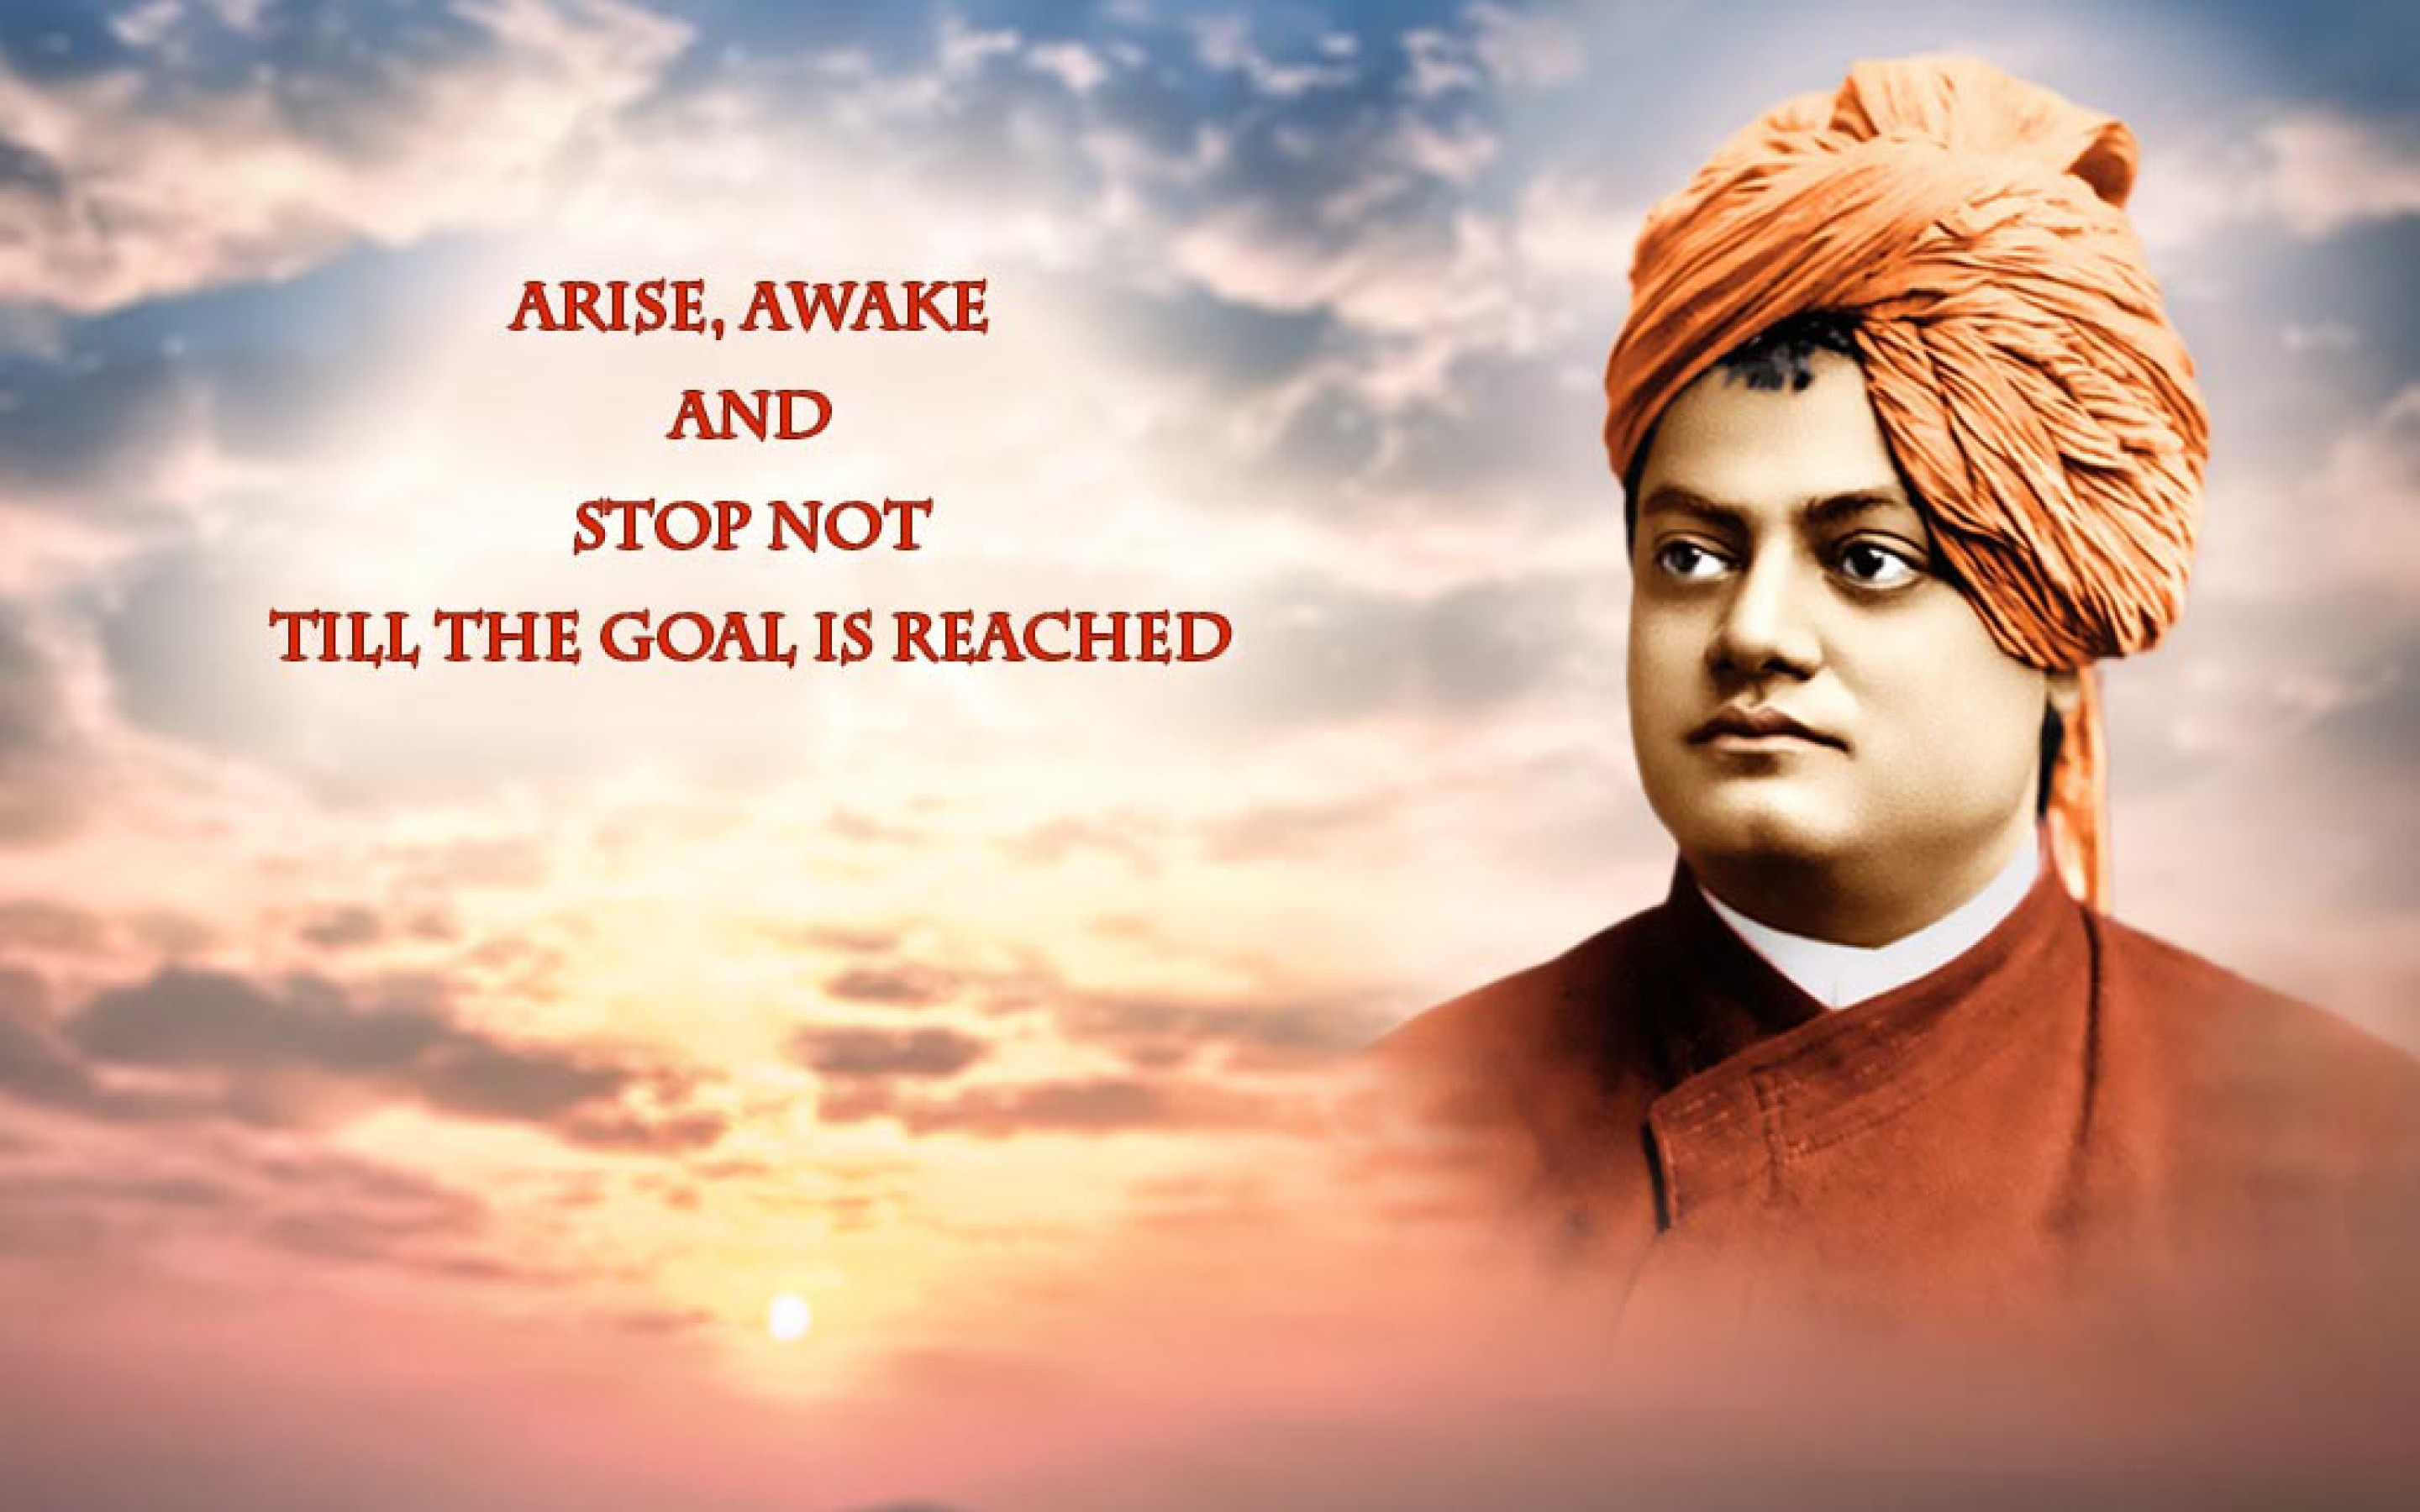 Swami Vivekananda Life Quotes Wallpaper desktop backgrounds 2880x1800